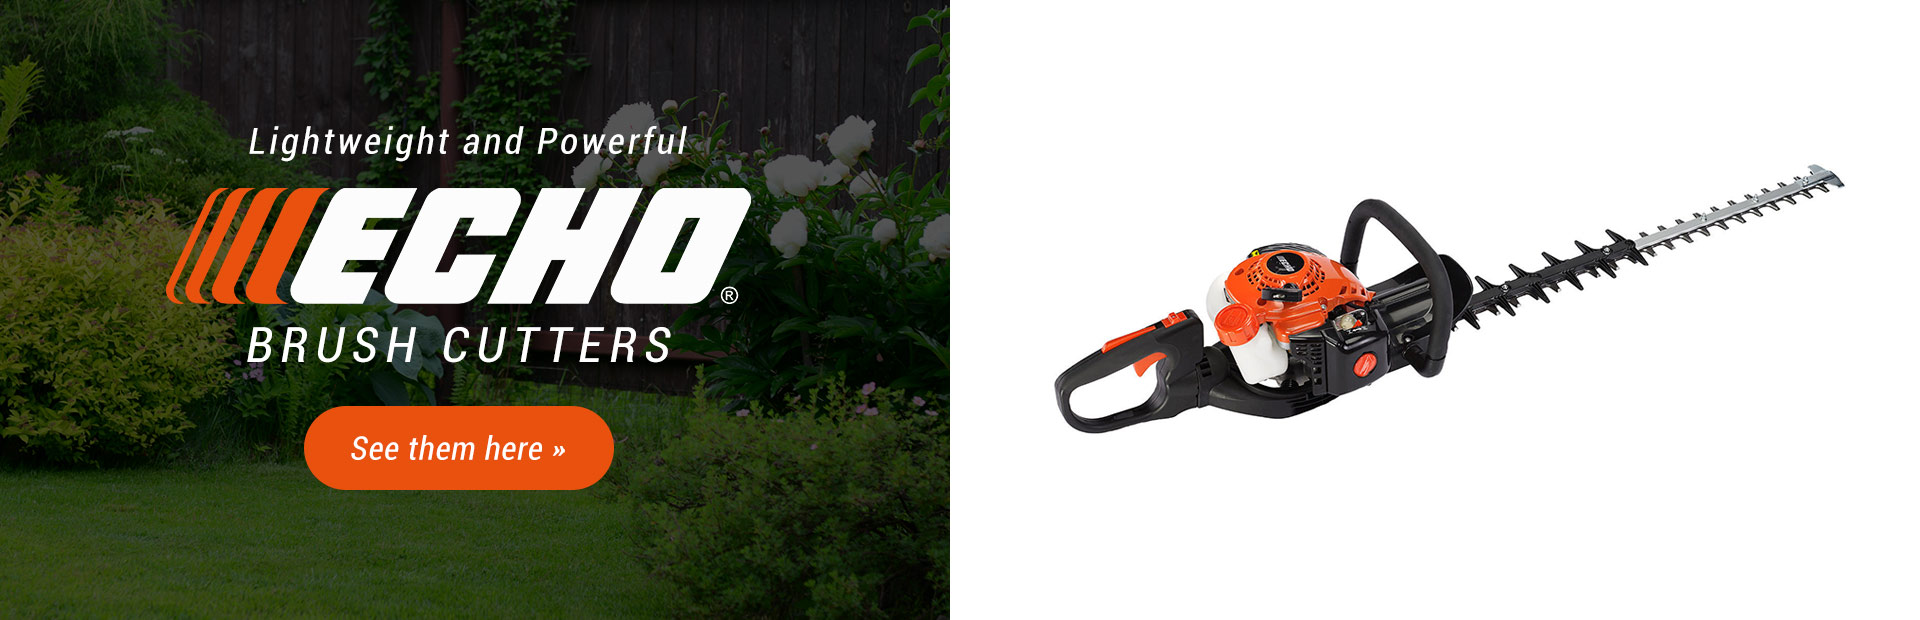 ECHO Brush Cutters: Click here to see the models.